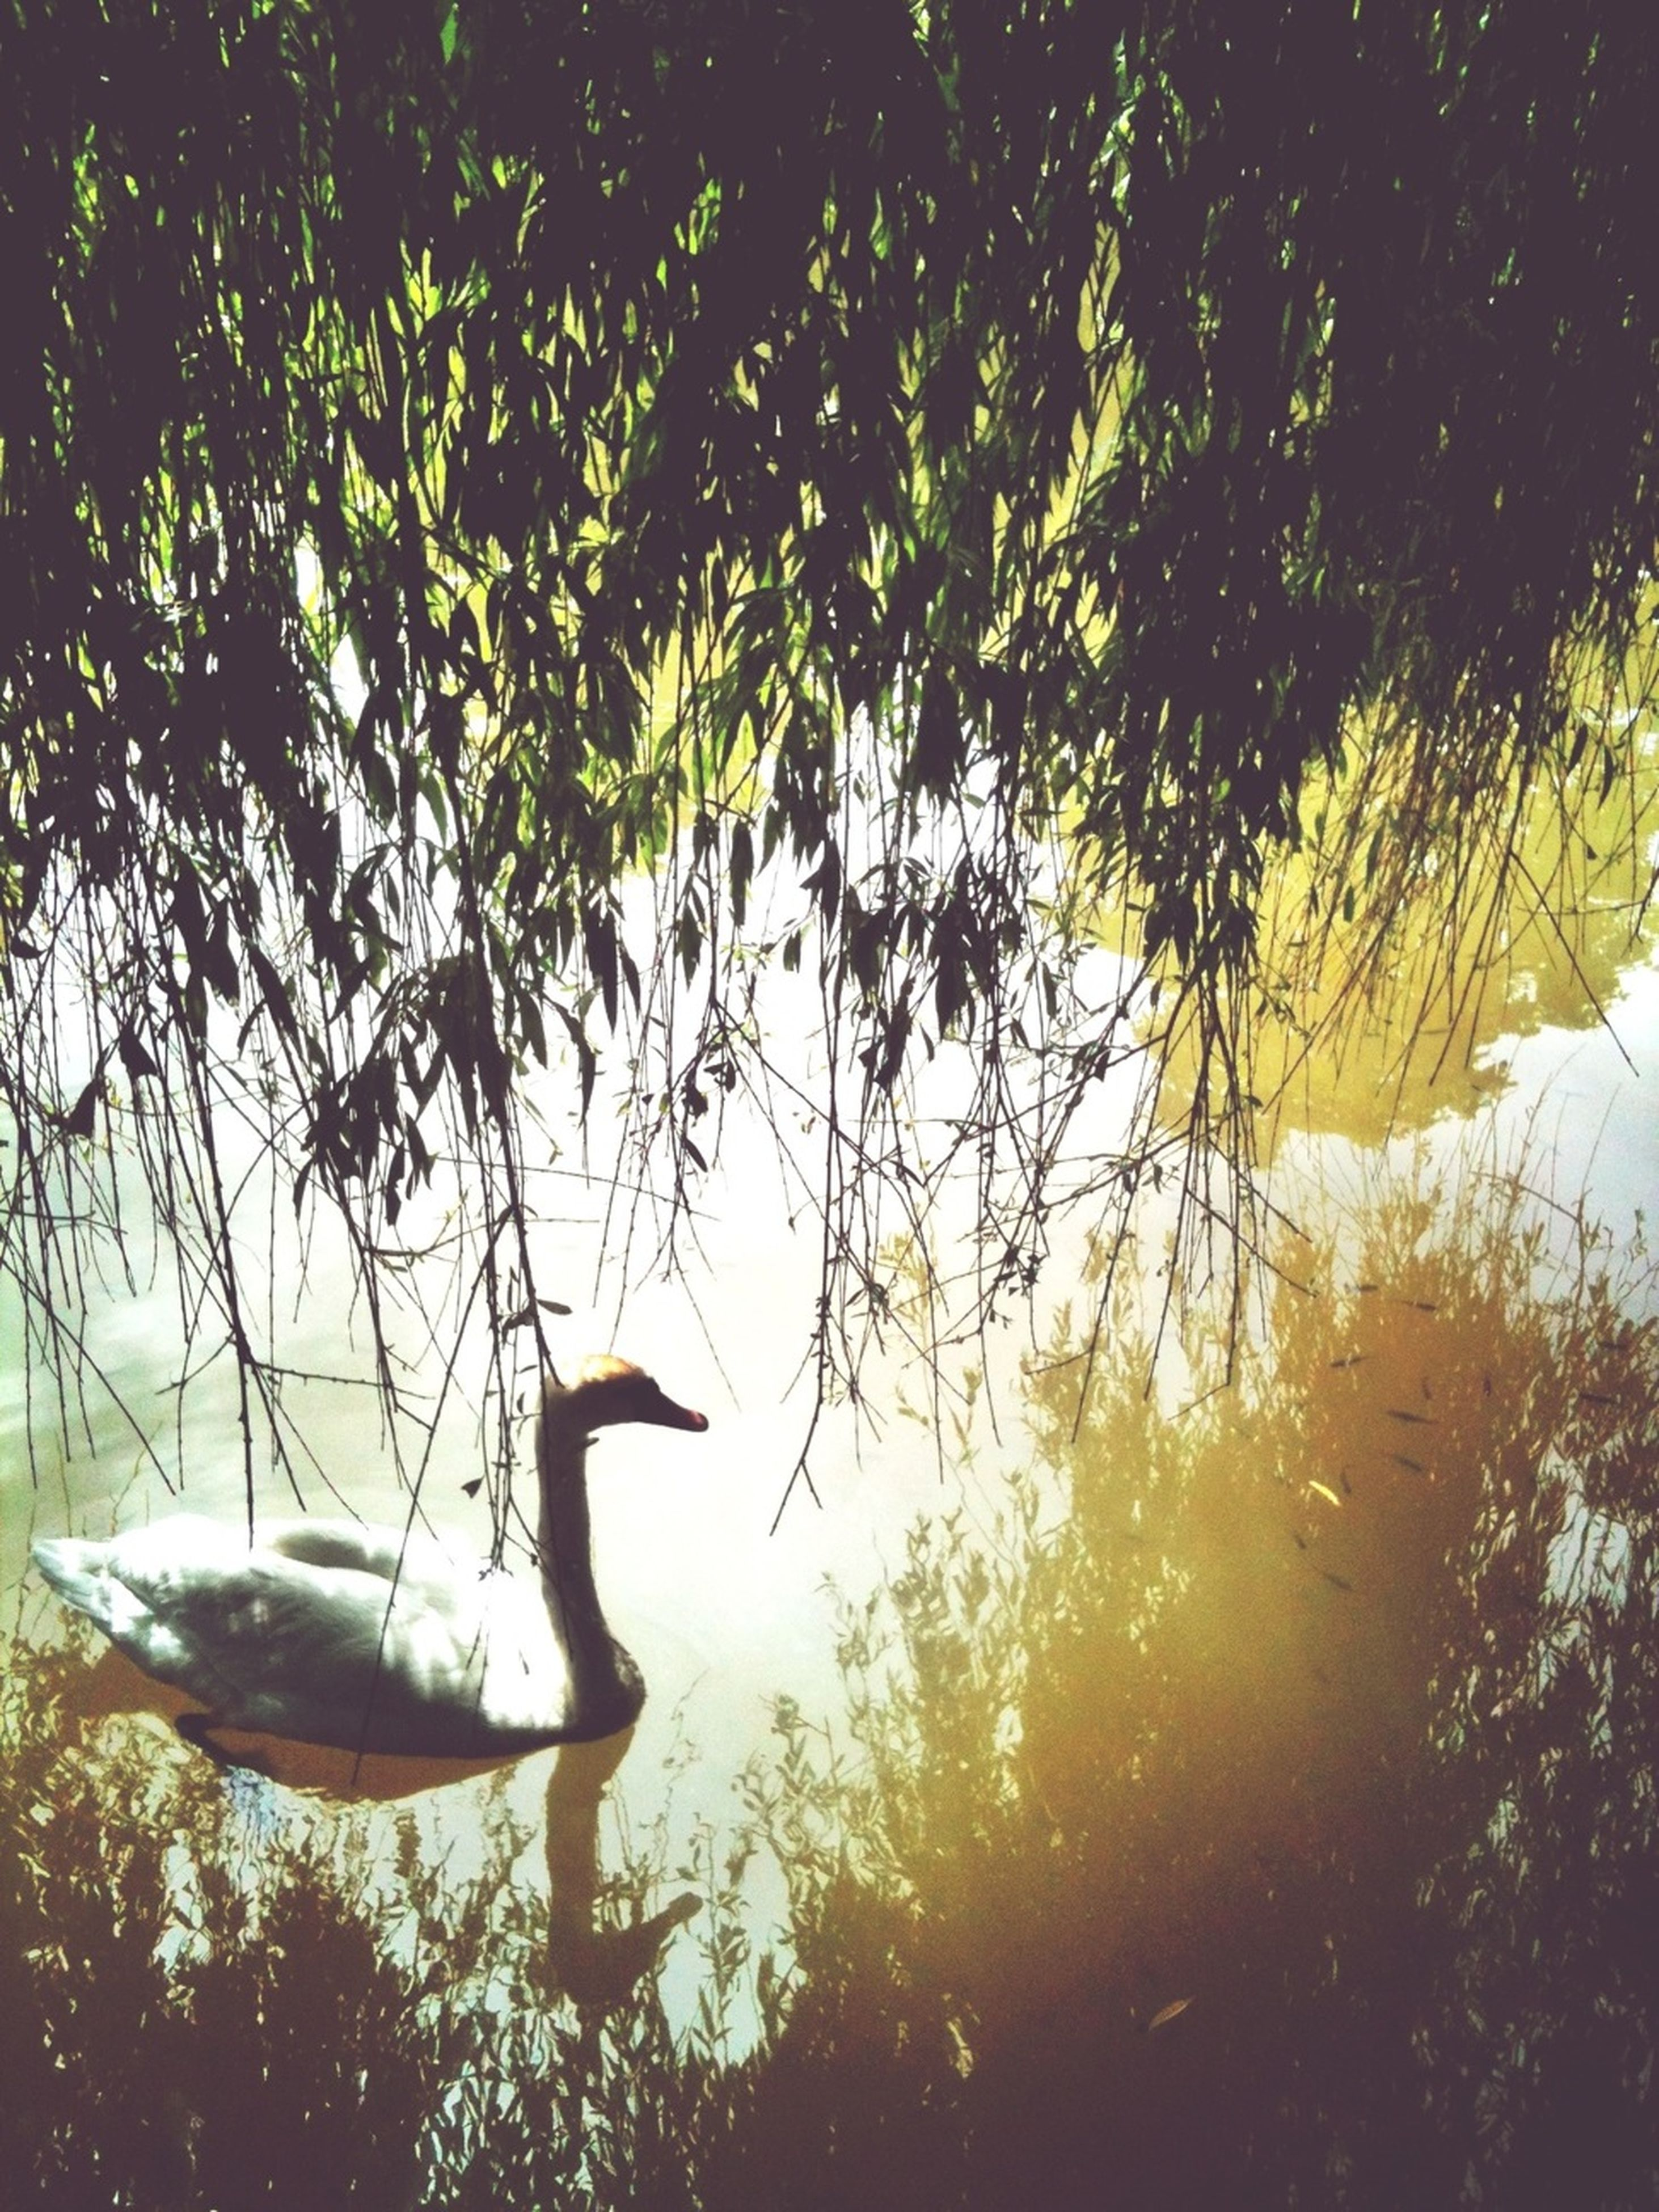 tree, water, bird, branch, nature, tranquility, beauty in nature, growth, reflection, lake, silhouette, day, outdoors, swan, tranquil scene, animals in the wild, sunlight, sky, scenics, no people